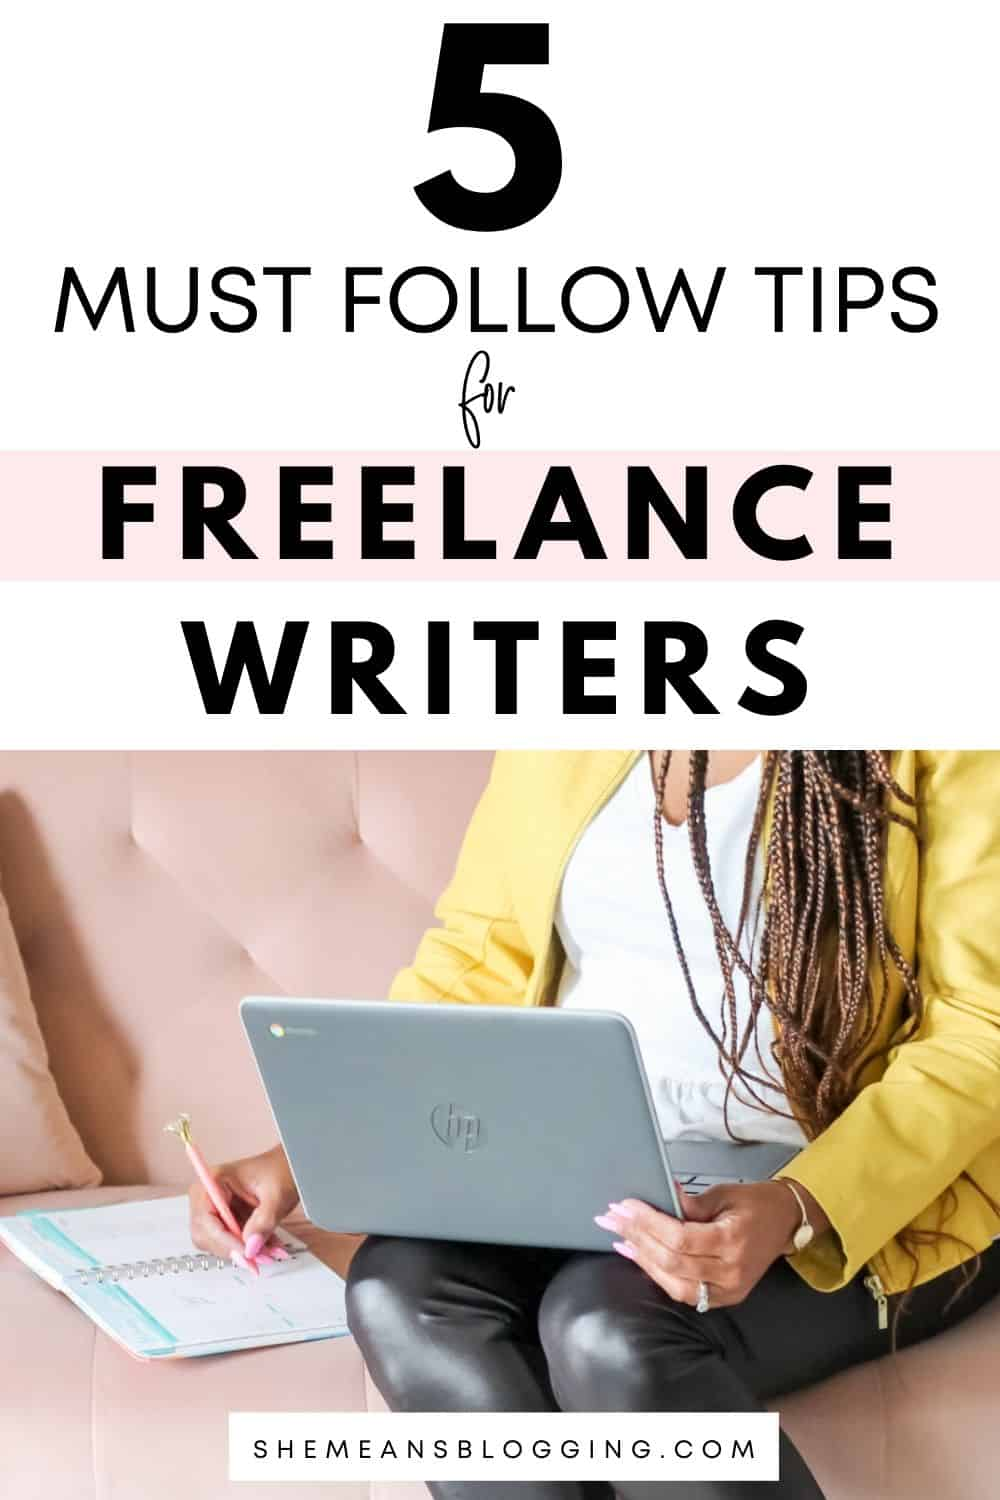 Have you started freelance writing career? Follow these 5 most recommended freelance writing tips for beginners to get clients and get paid